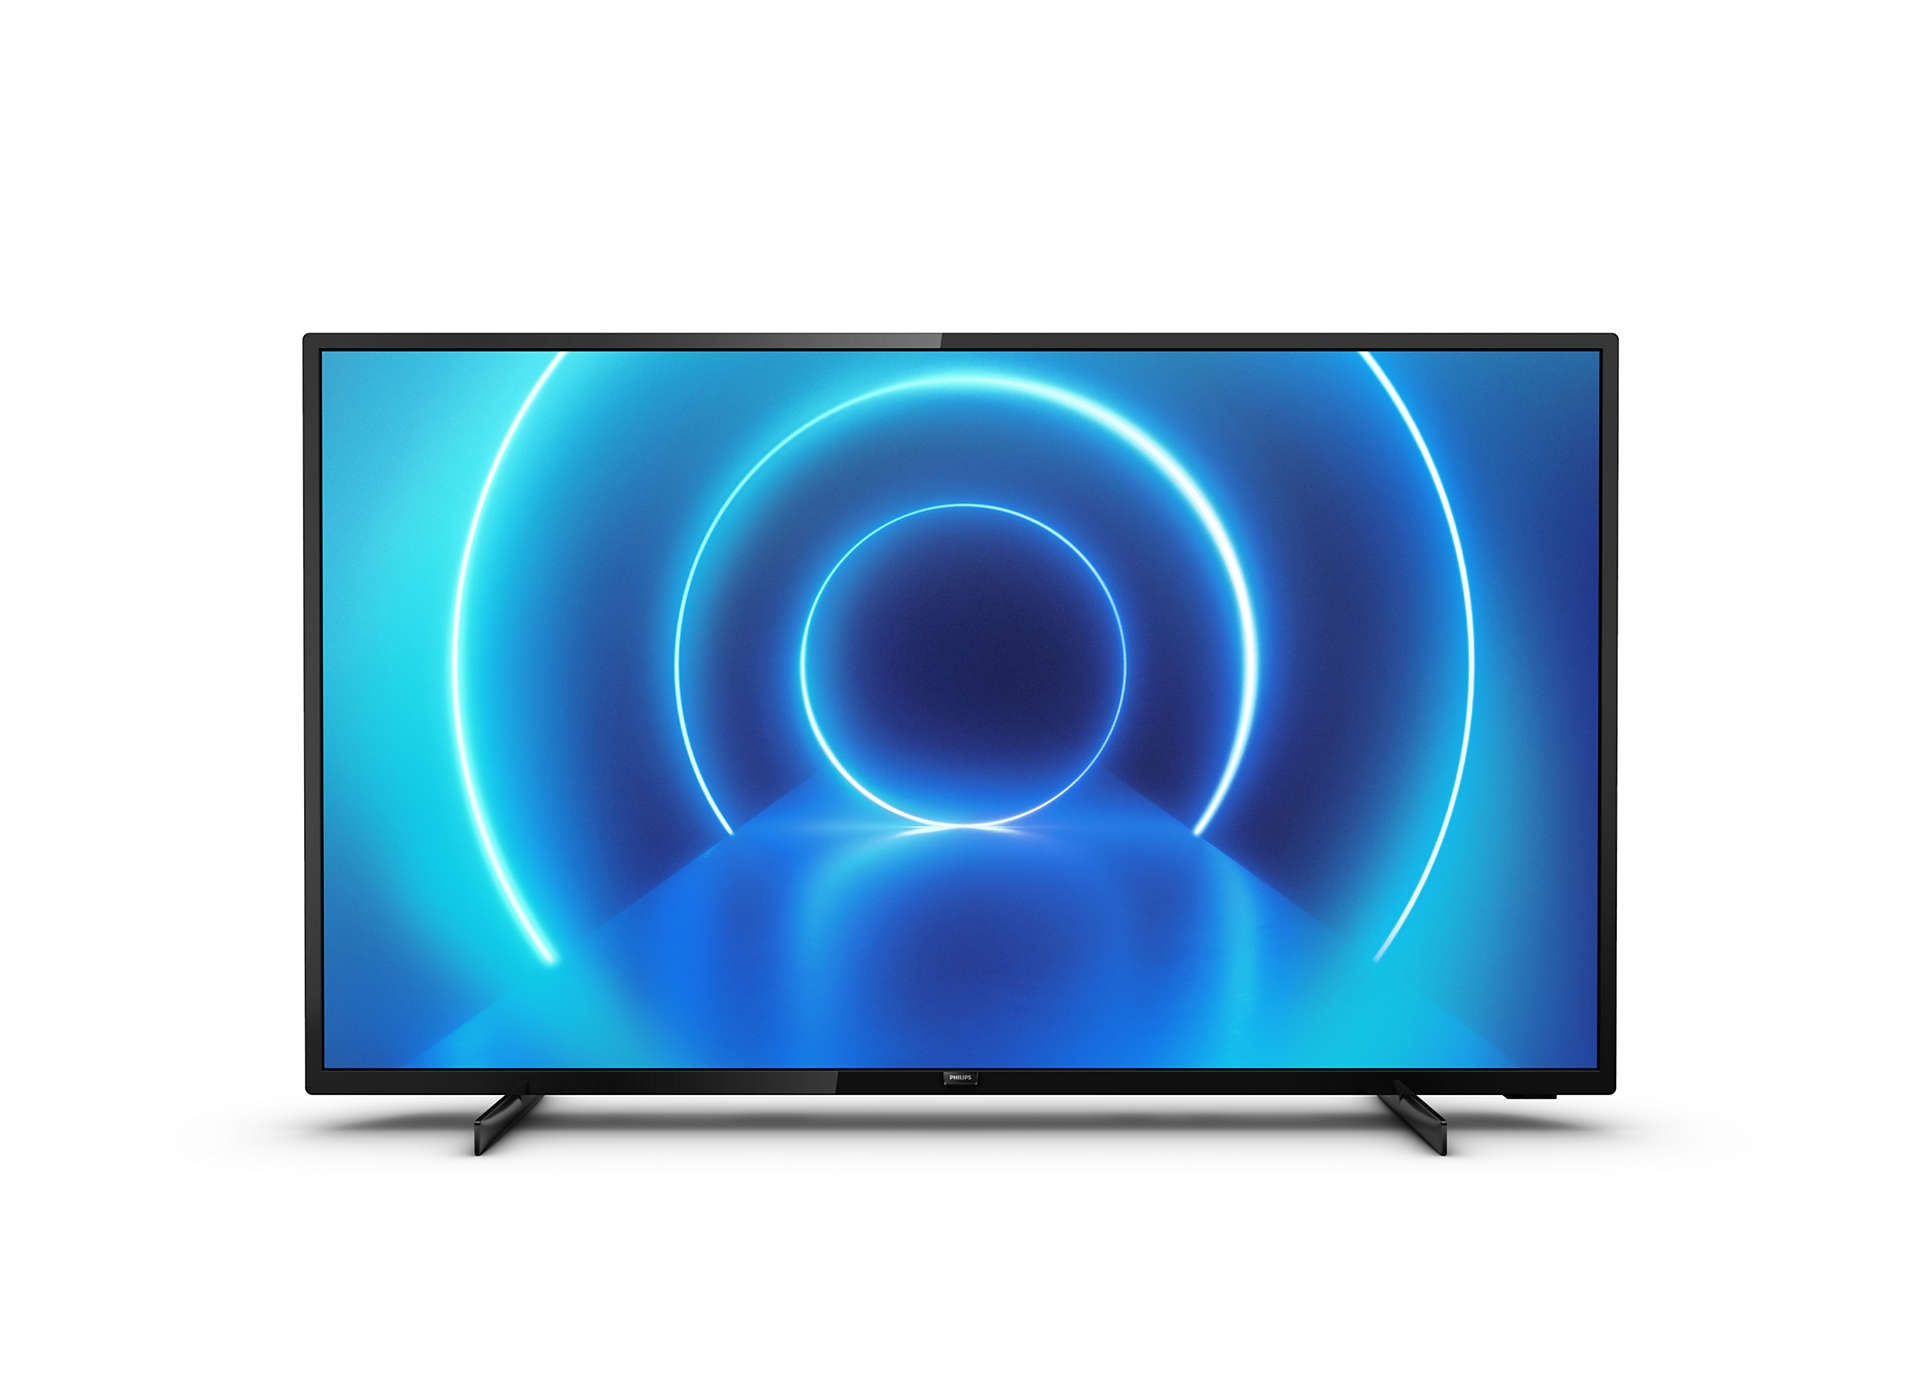 Фото - ЖК Телевизор Ultra HD Philips 43PUS7505 43 дюйма телевизор philips 43pus7505 60 43 ultra hd 4k